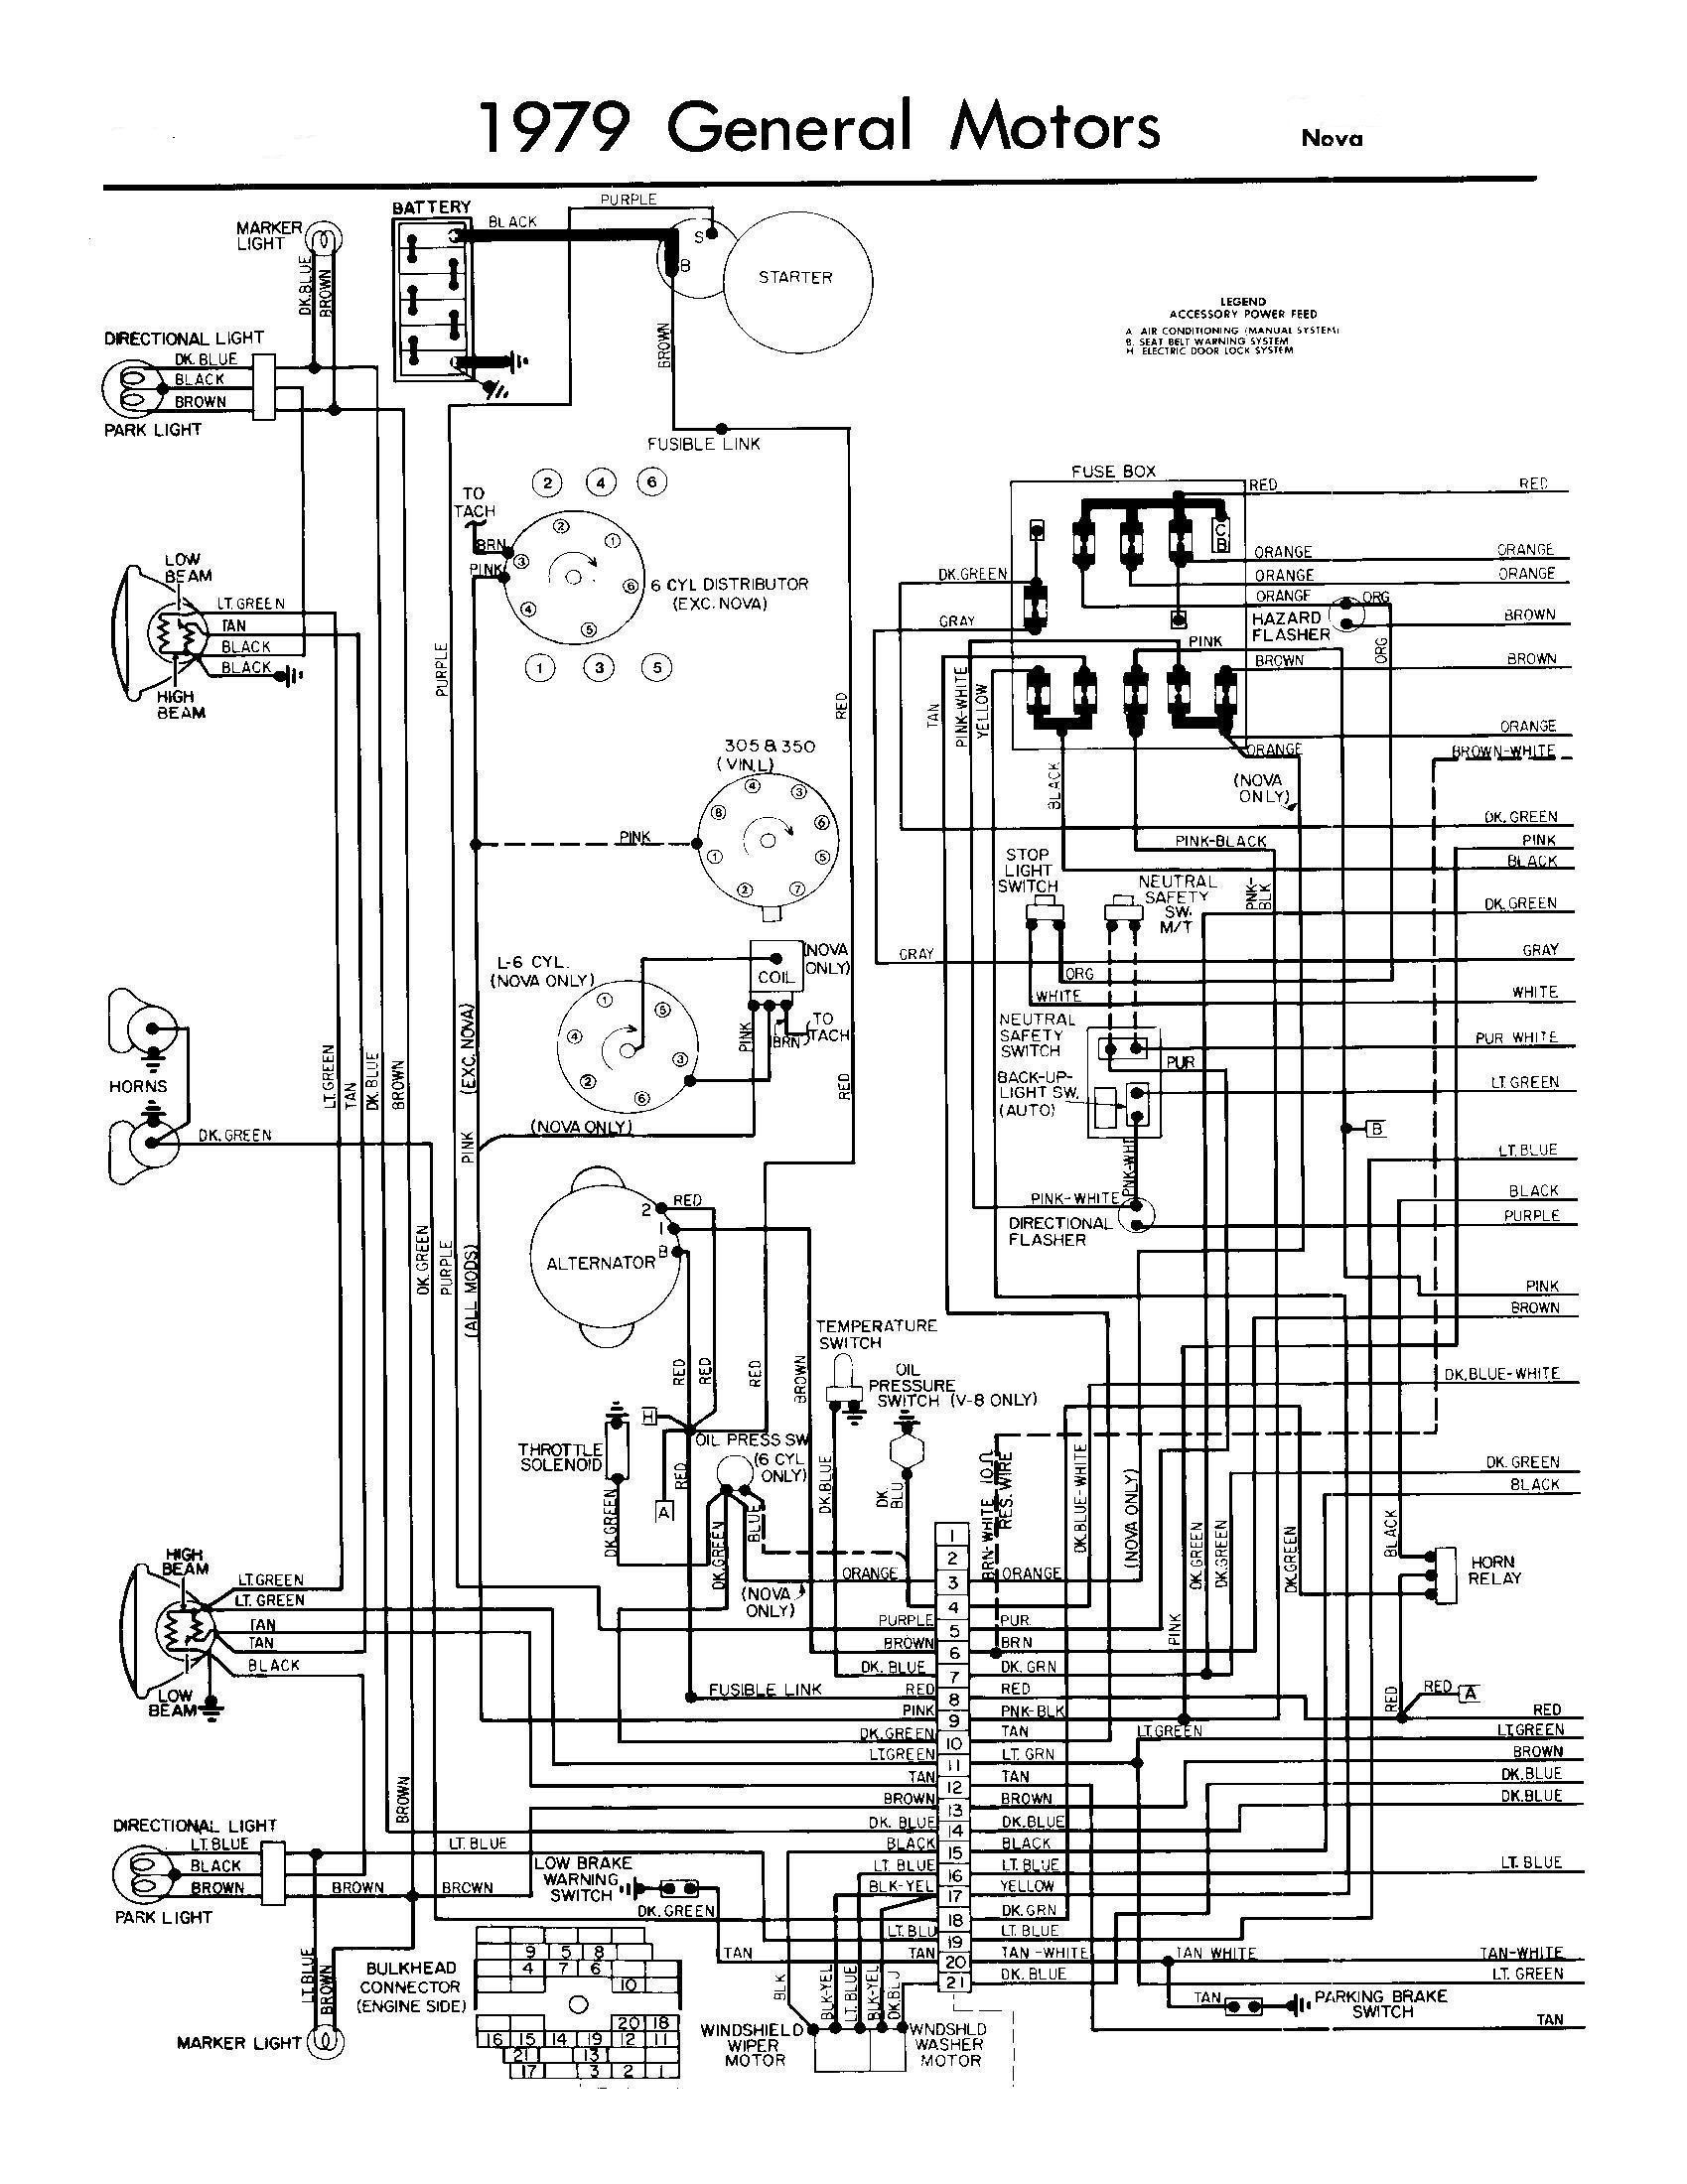 1984 Chevy P30 Step Van Wiring Diagram - Wiring Diagram Option on gmc motorhome wiring diagram, ford motorhome wiring diagram, dodge motorhome wiring diagram, monaco motorhome wiring diagram, chevy astro van wiring diagram, fleetwood bounder motorhome wiring diagram,